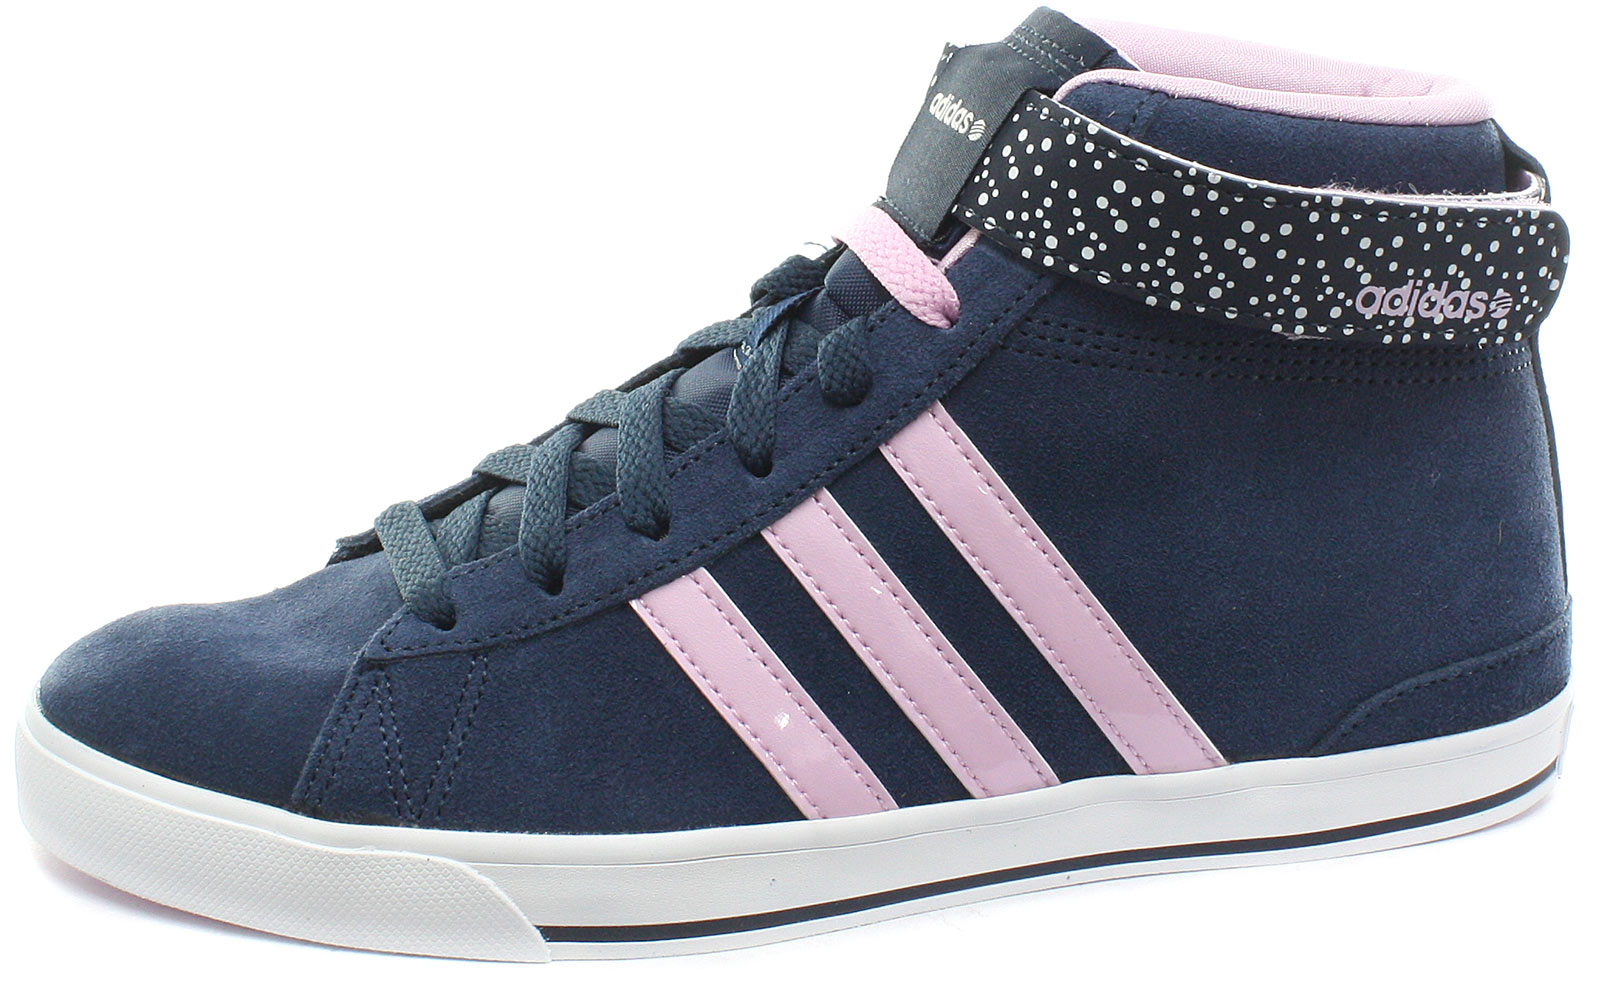 New Daily adidas Daily New Twist Mid Womens Trainers Size () ecdc17